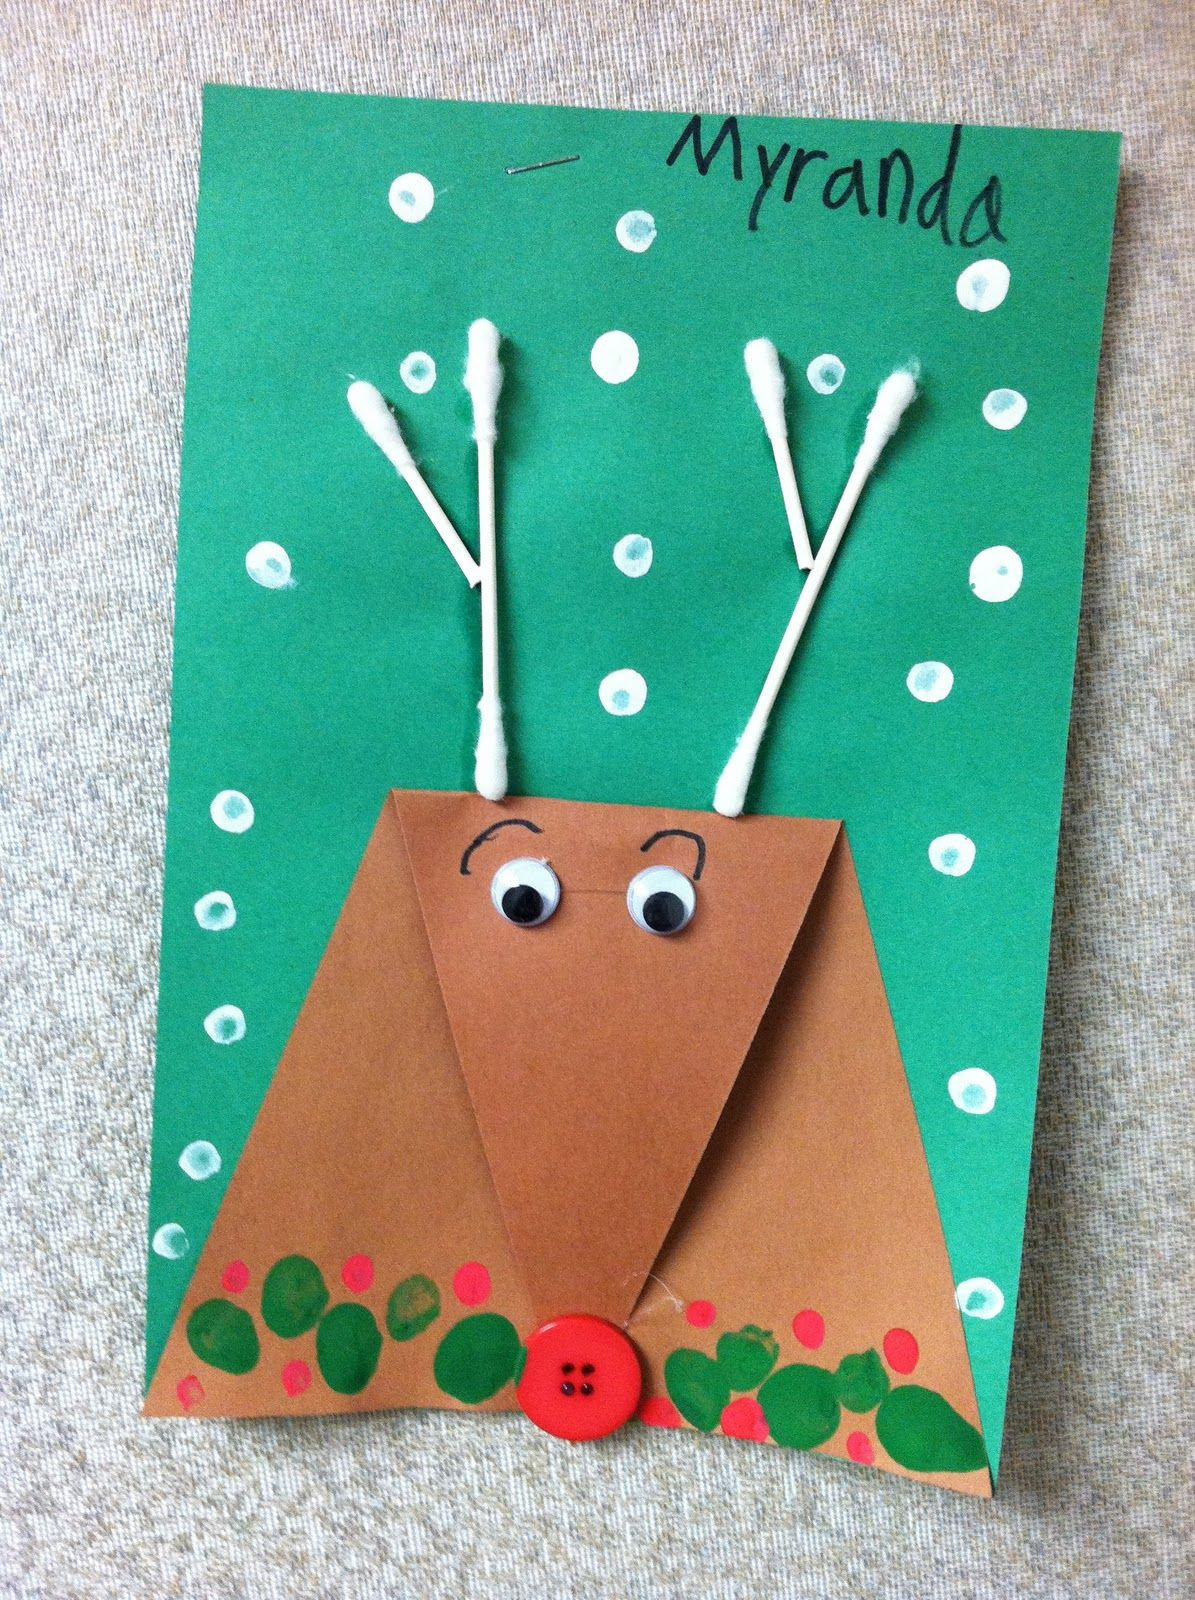 Superb Christmas Cards Arts And Crafts Ideas Part - 5: Perfect Christmas Reindeer Craft For Kindergarten Perfect Craft! ArtZ  KiddoZ - Triangle Collage Reindeer Card Or Picture. Great Activity To Do  With Little ...